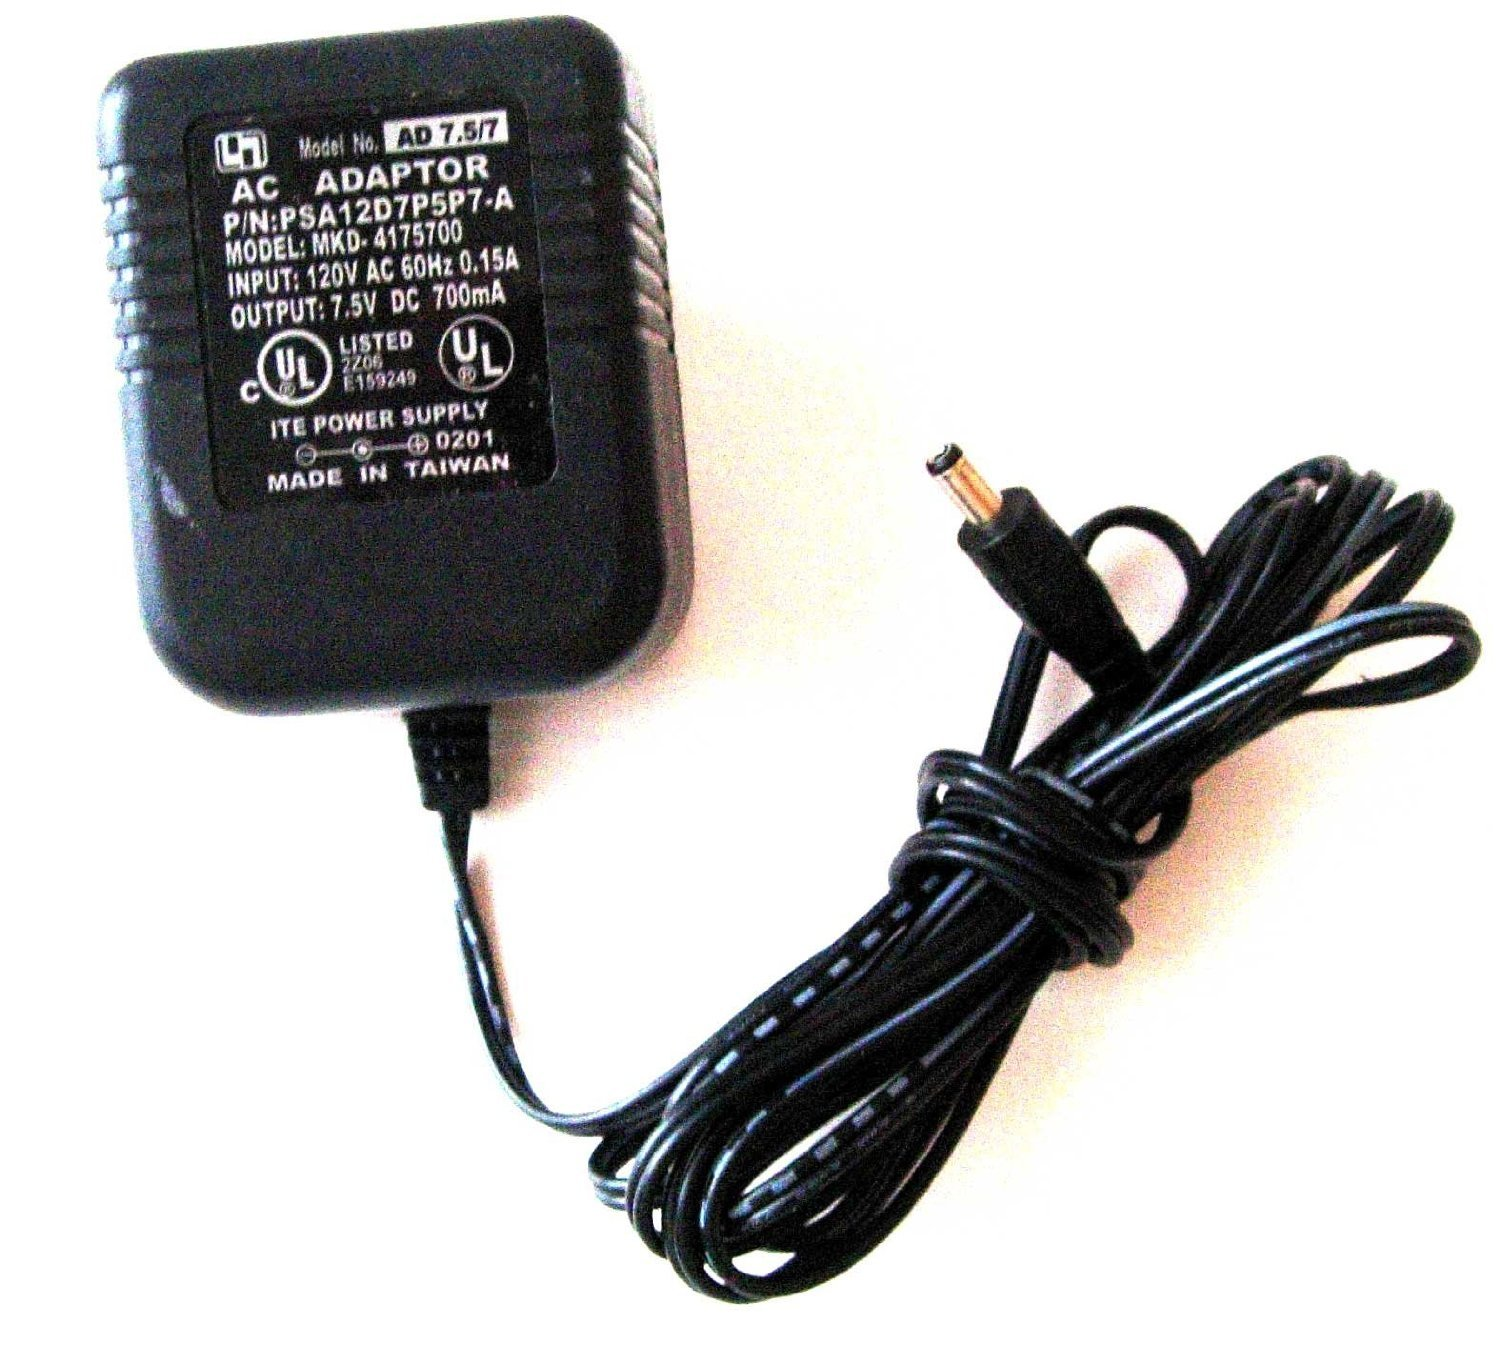 perfect used ITE POWER SUPPLY AC ADAPTER PSA12D7P5P7-A MKD-4175700delivered $11